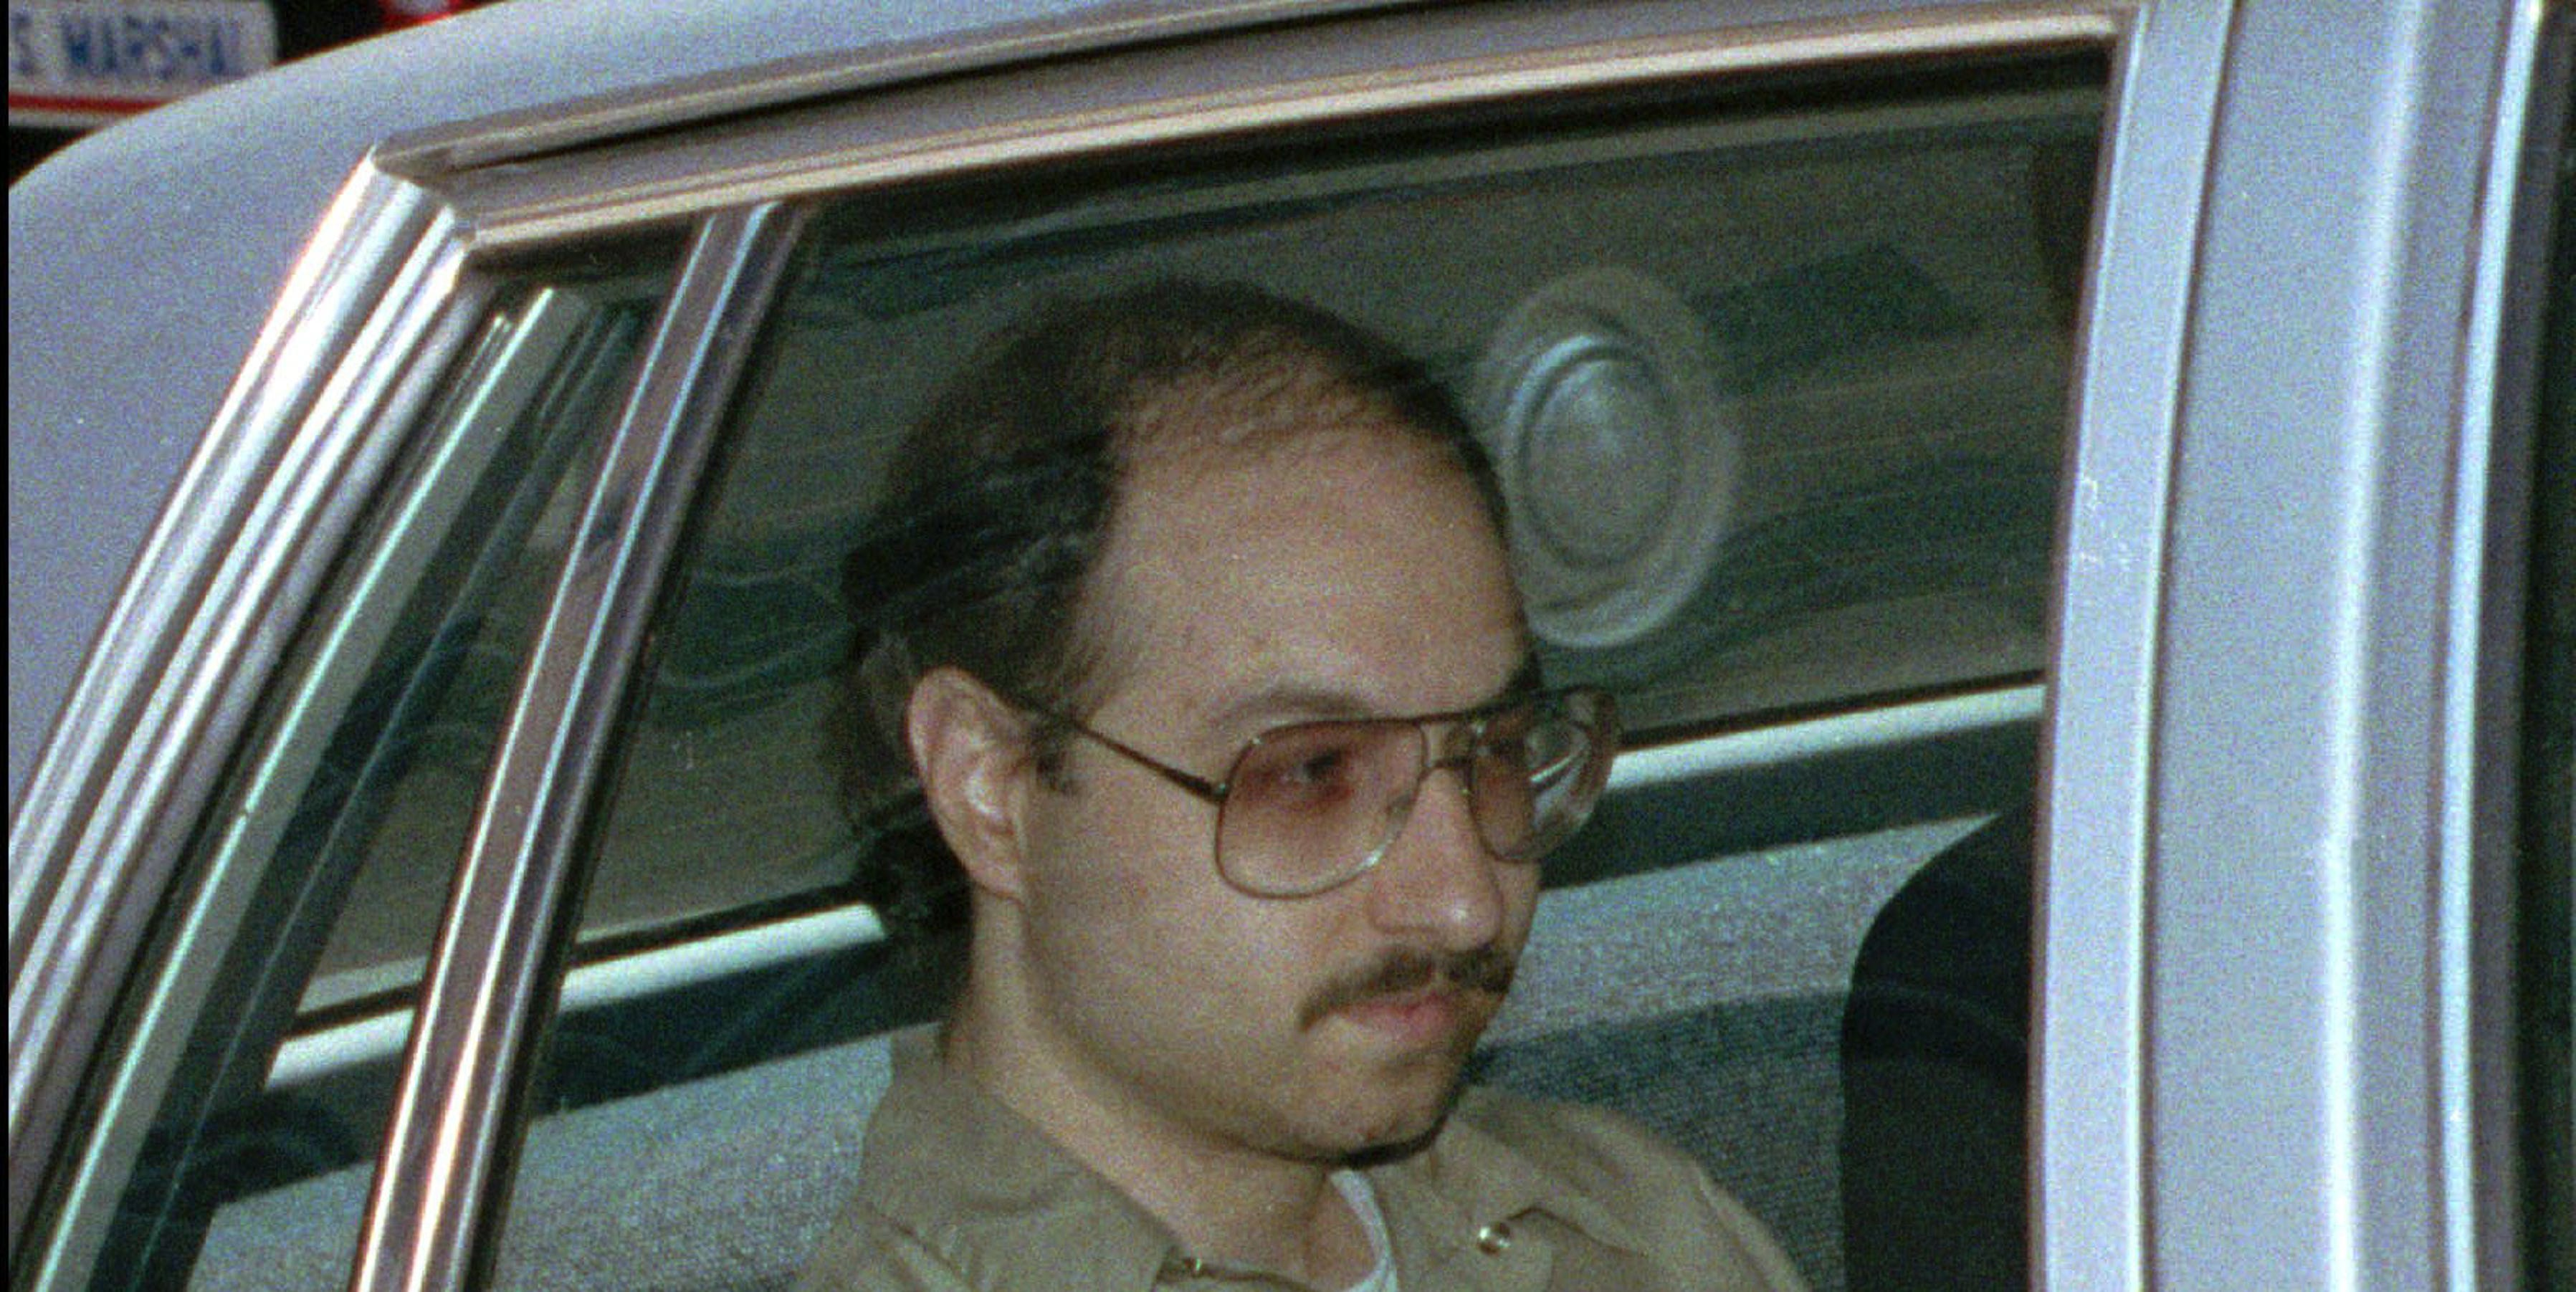 jonathon pollard biography Washington jonathan j pollard, the american convicted of spying on behalf of israel, will walk out of prison on friday after 30 years, but the obama administration has no plans to let him leave the country and move to israel as he has requested mr pollard, who as a navy.